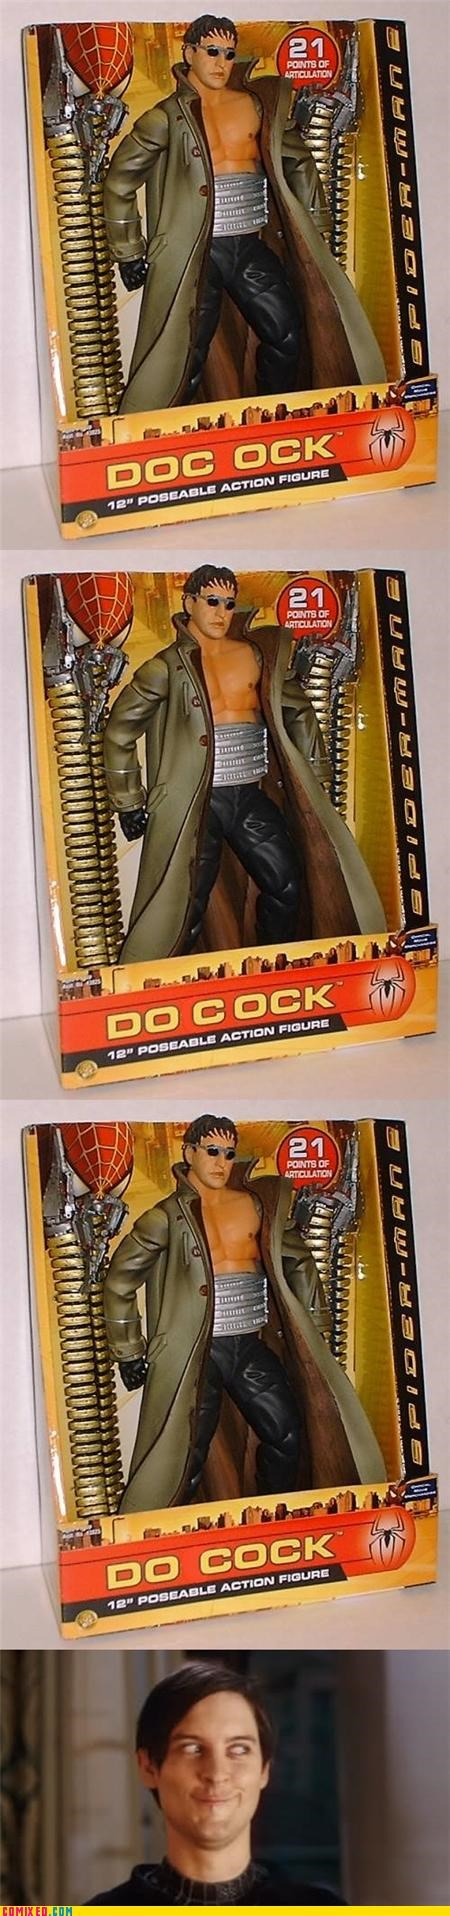 action figure,doc ock,Spider-Man,TV